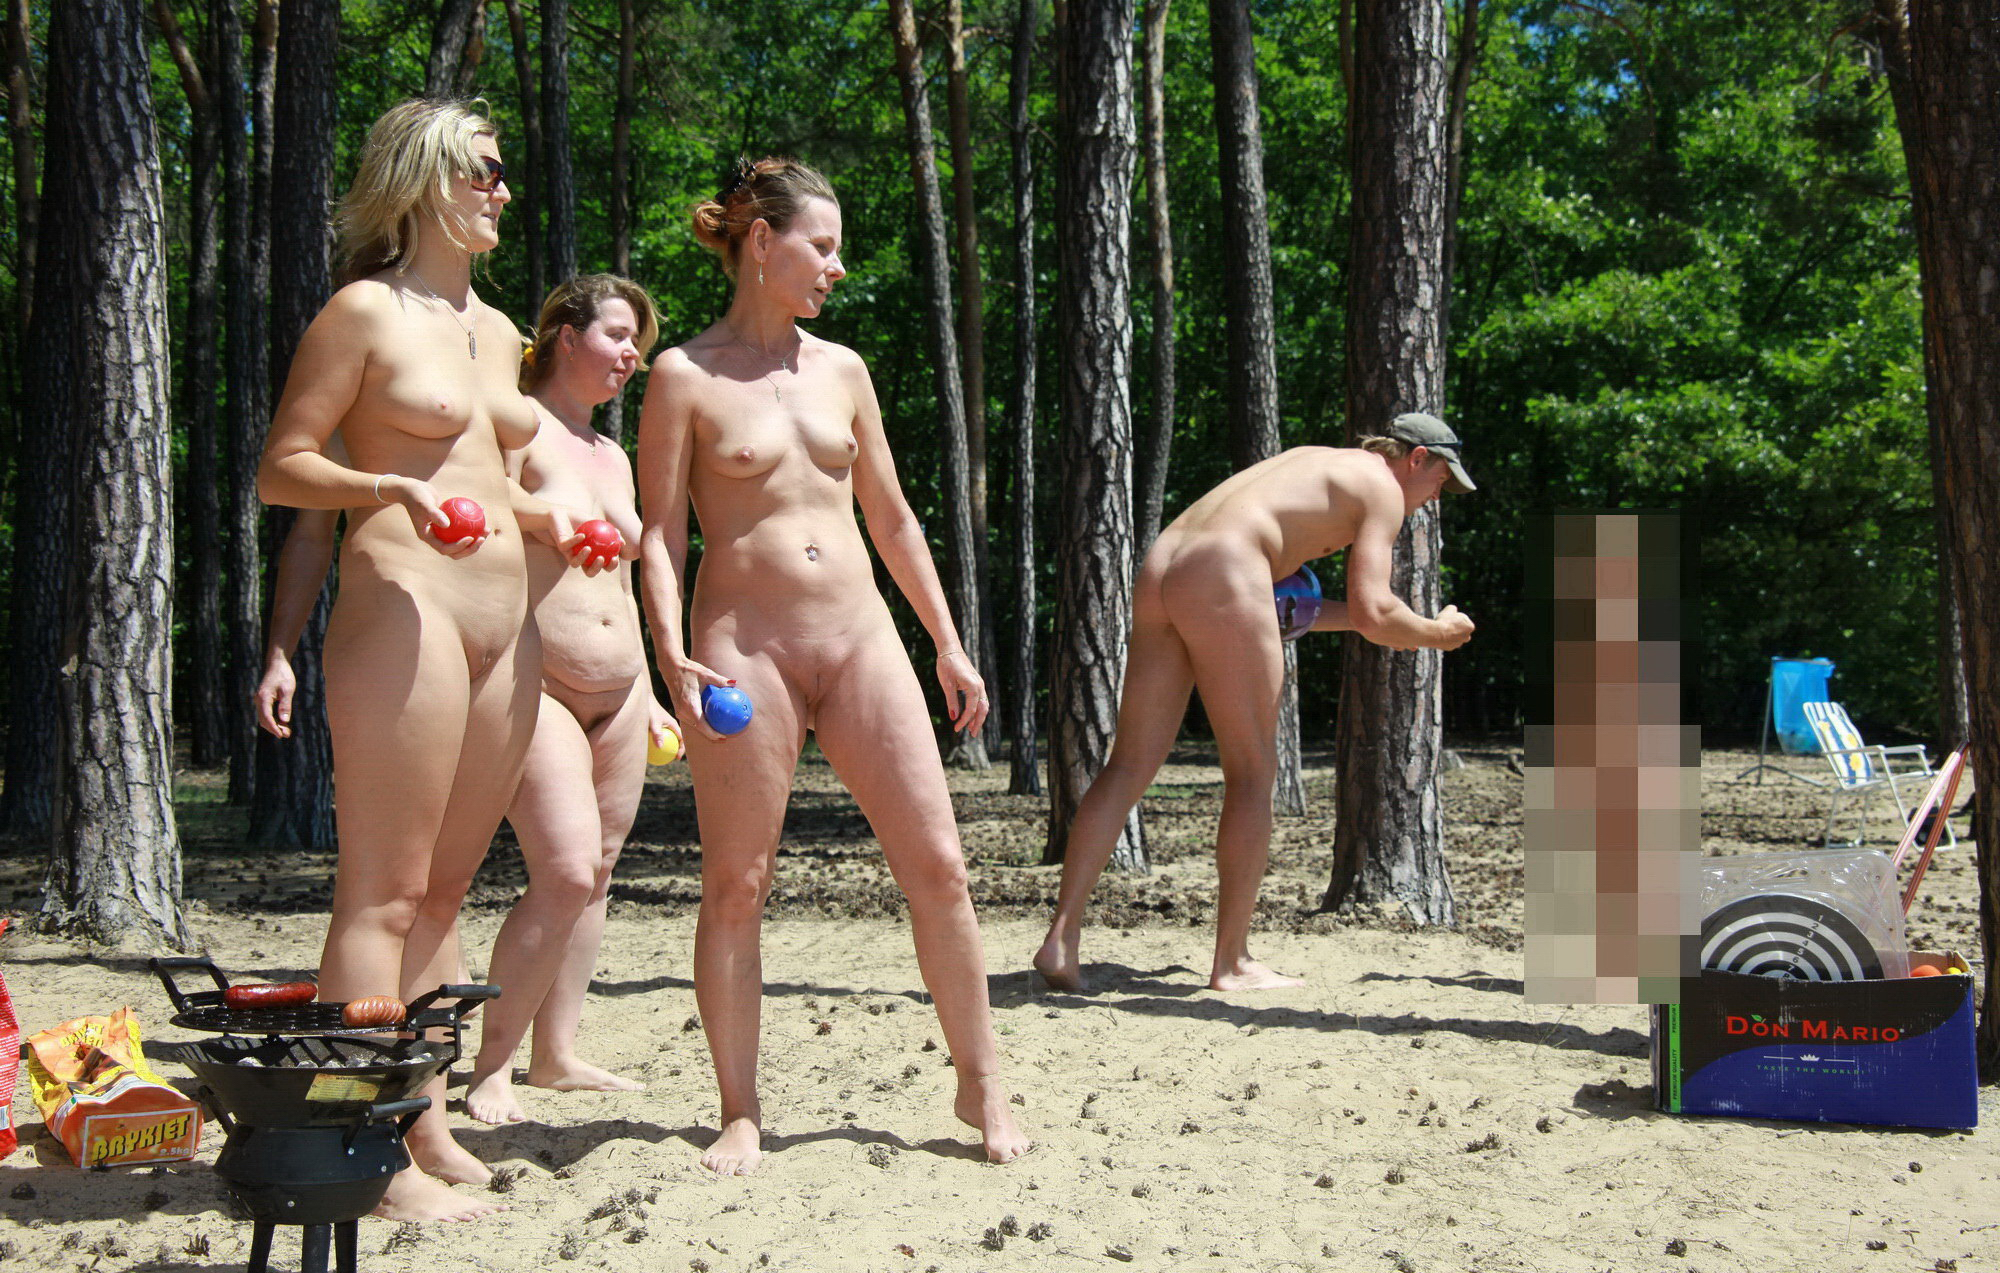 And hot swinger beach sex videos